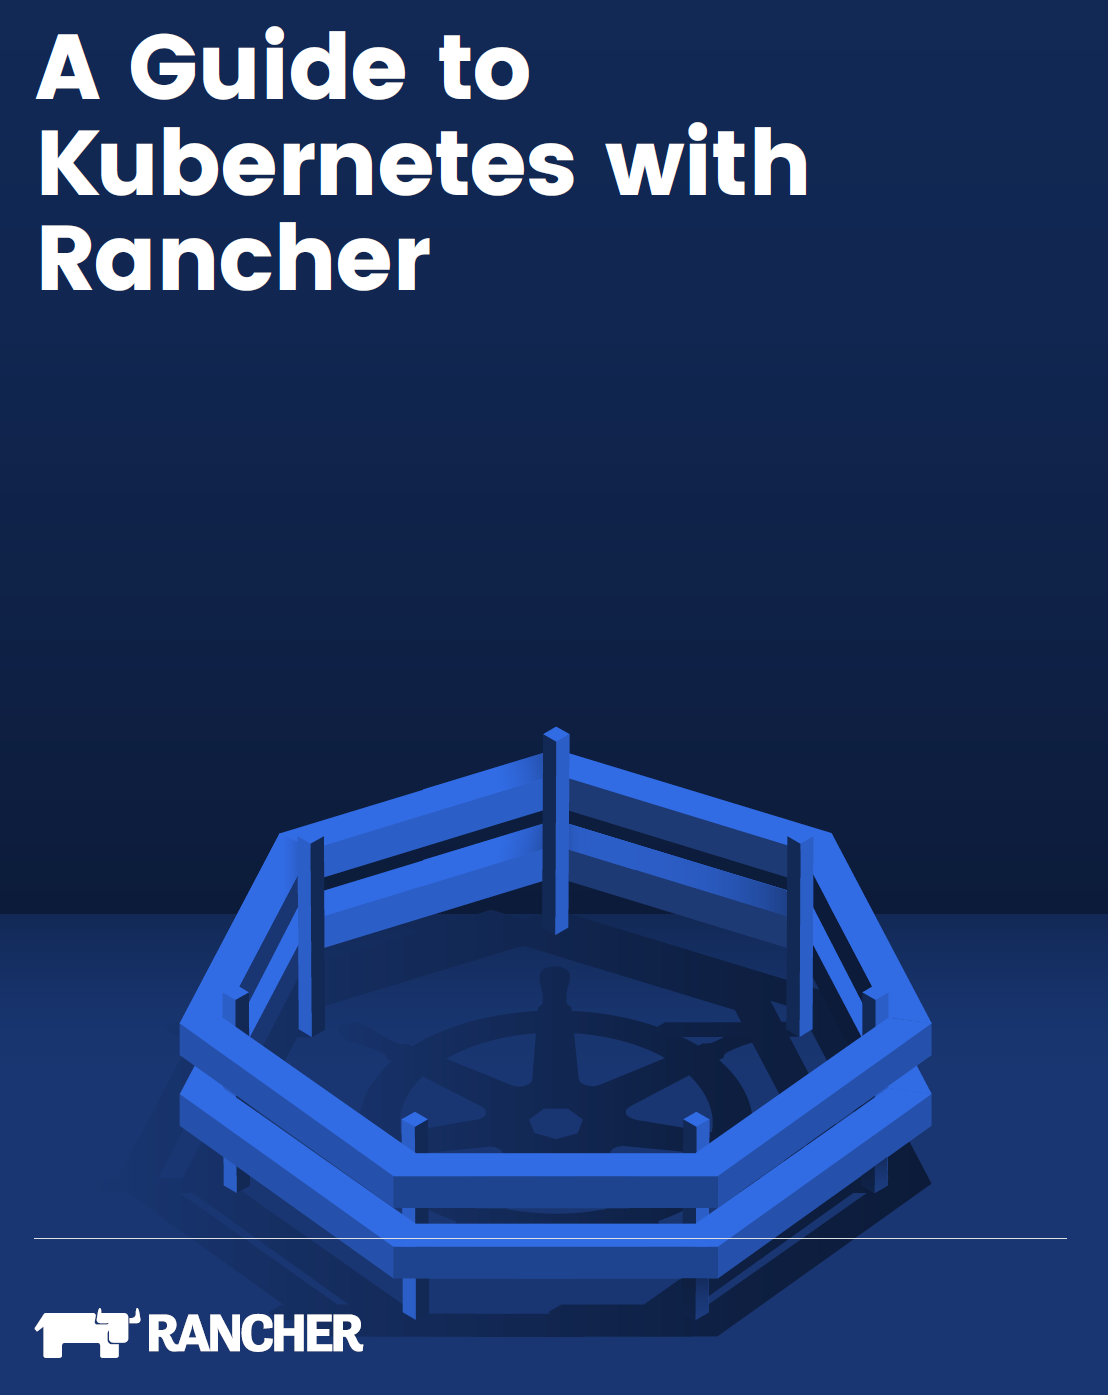 Guide to Kubernetes with Rancher | Kubernetes Management